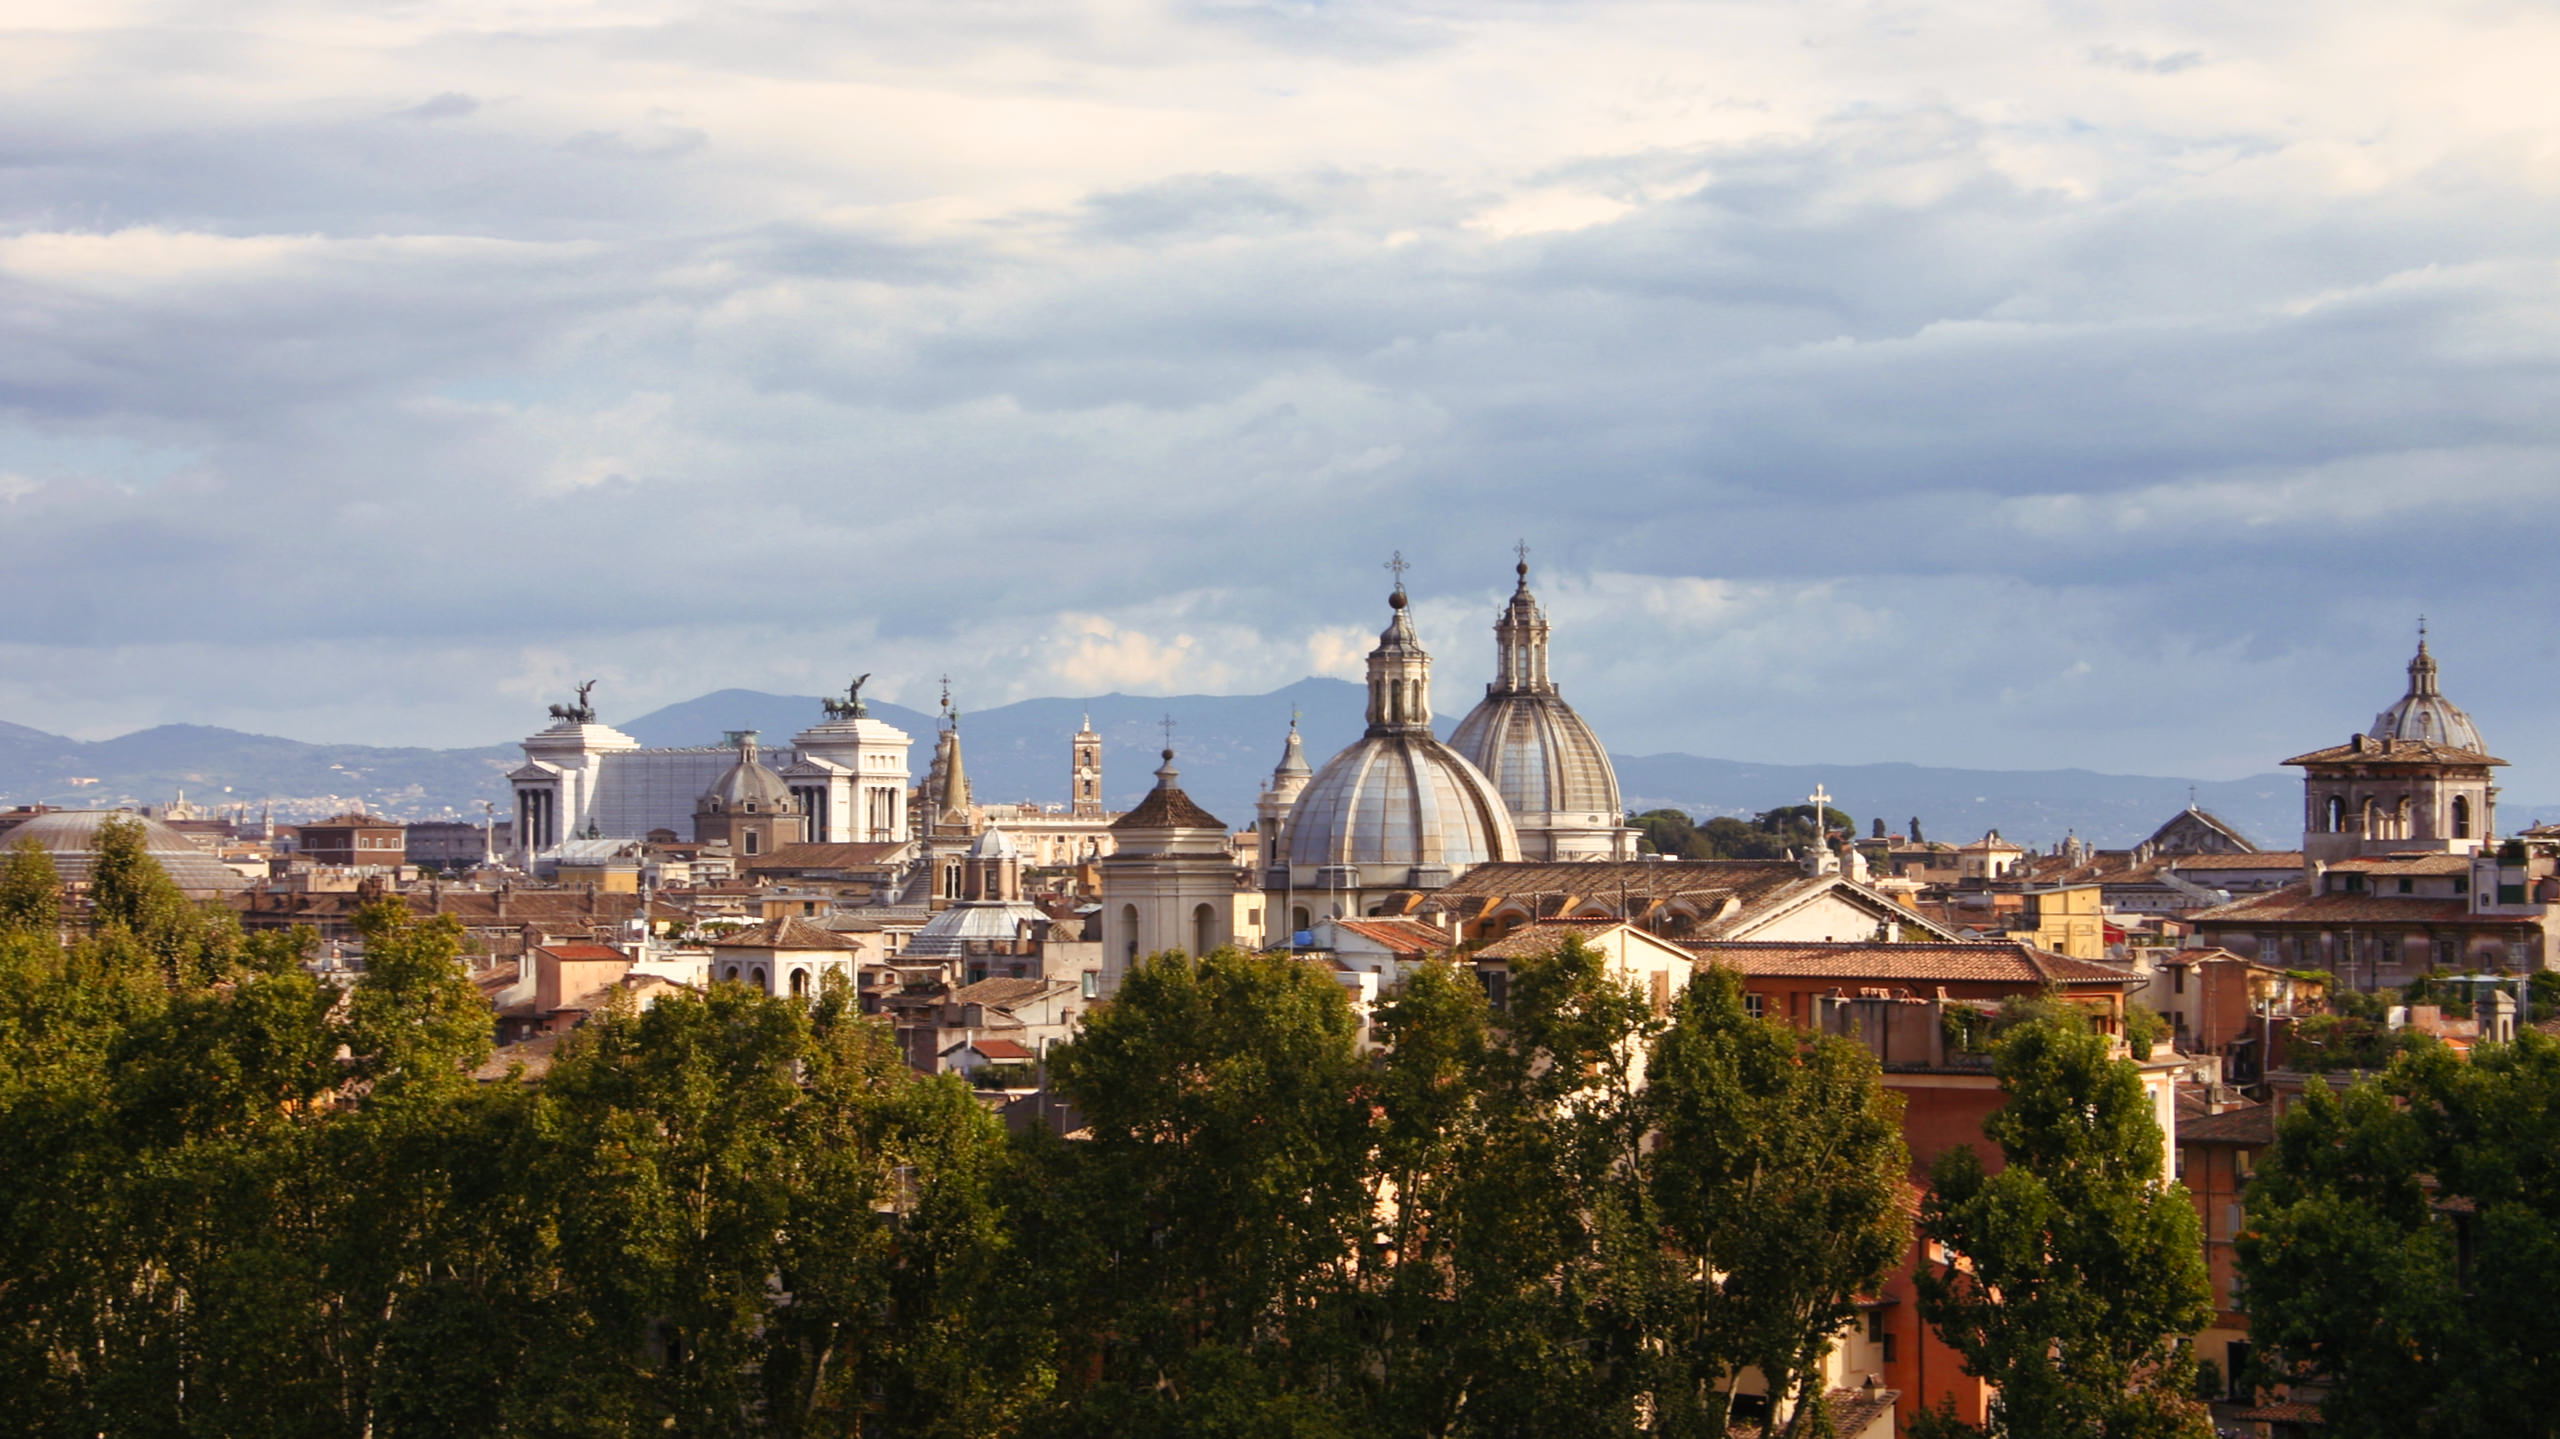 Skyline of Rome, Italy processed with Luminar AI's Toning tool   © Angela Andrieux